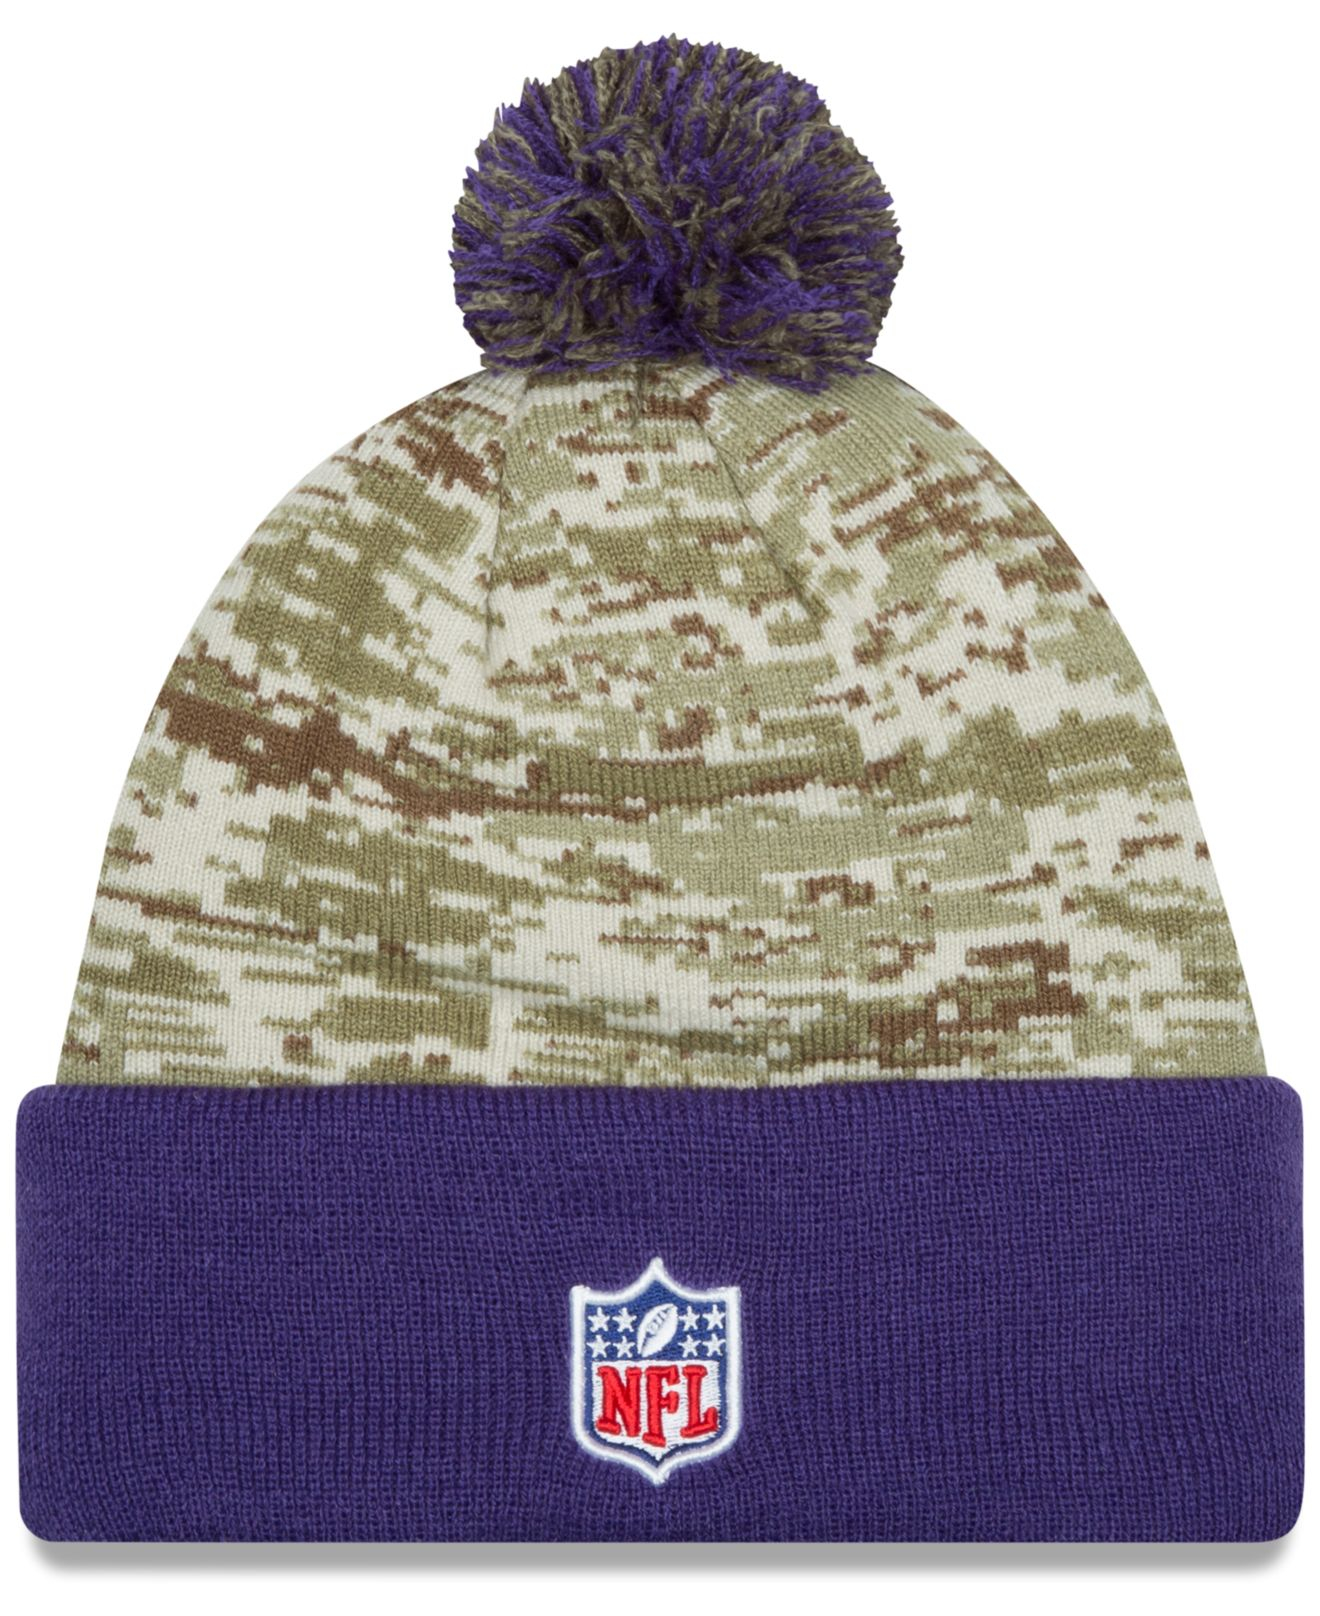 84a2b131 50% off minnesota vikings winter hat b1b29 e54a8